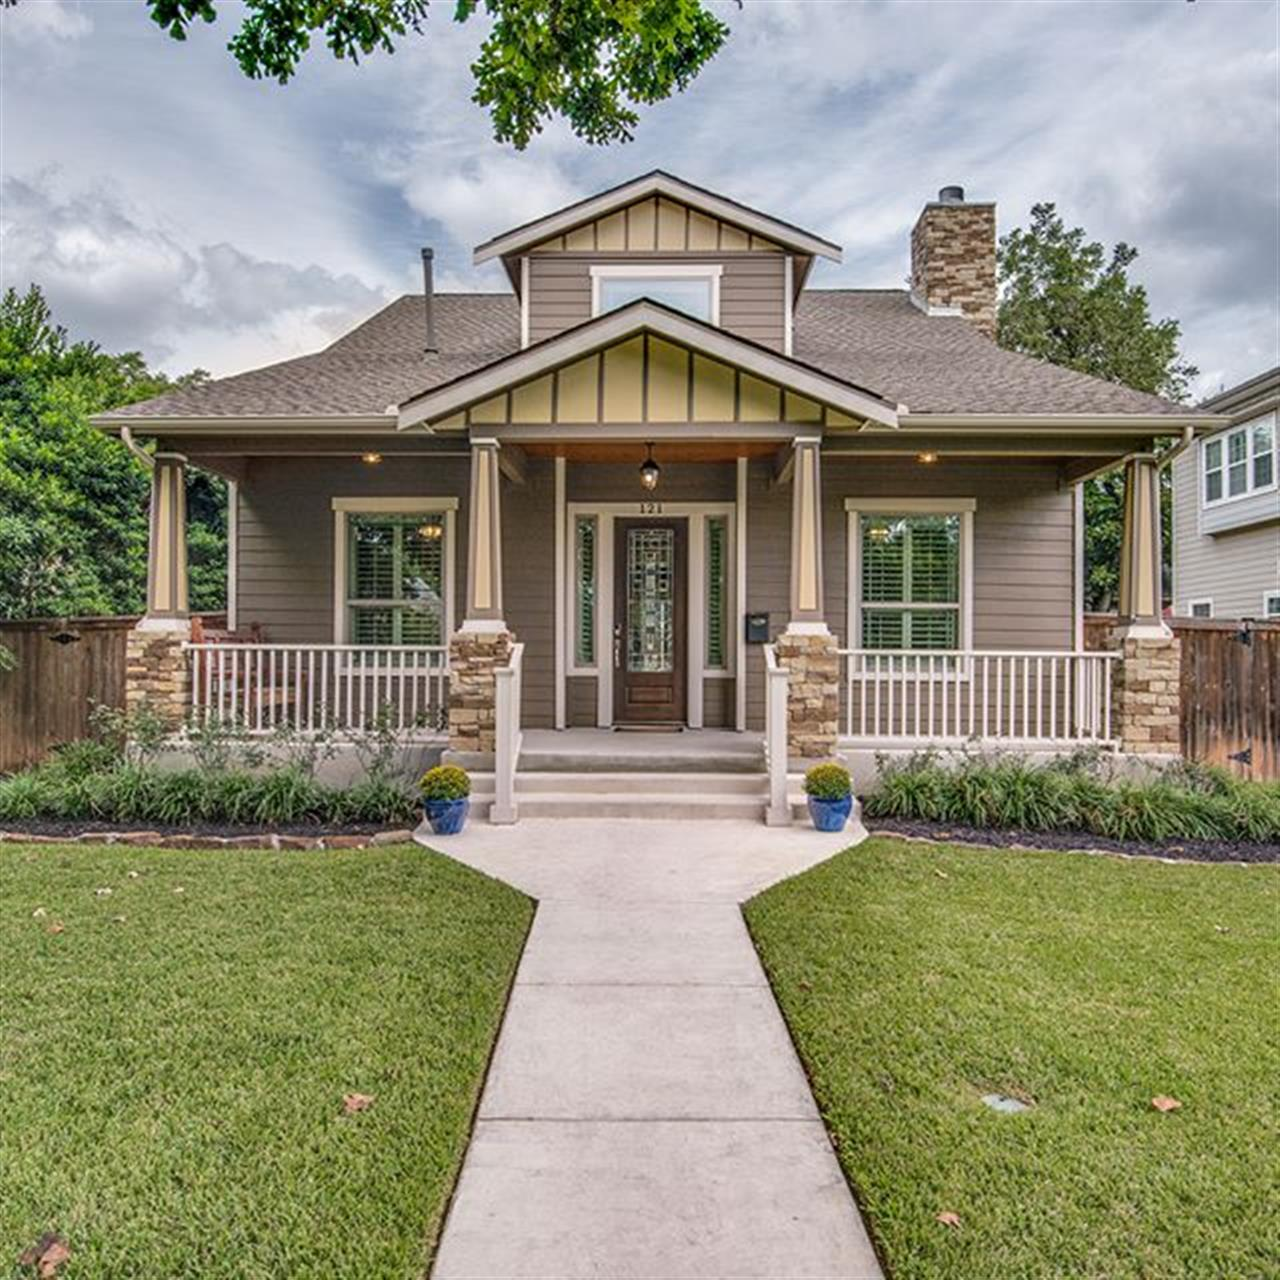 Luxury of the Day: 121 Lafayette Ave. in #AlamoHeights, listed by @ahayne. Modern, charming and move-in ready, this #Craftsman-style home features an open floor plan with wonderful natural light and large gathering spaces.